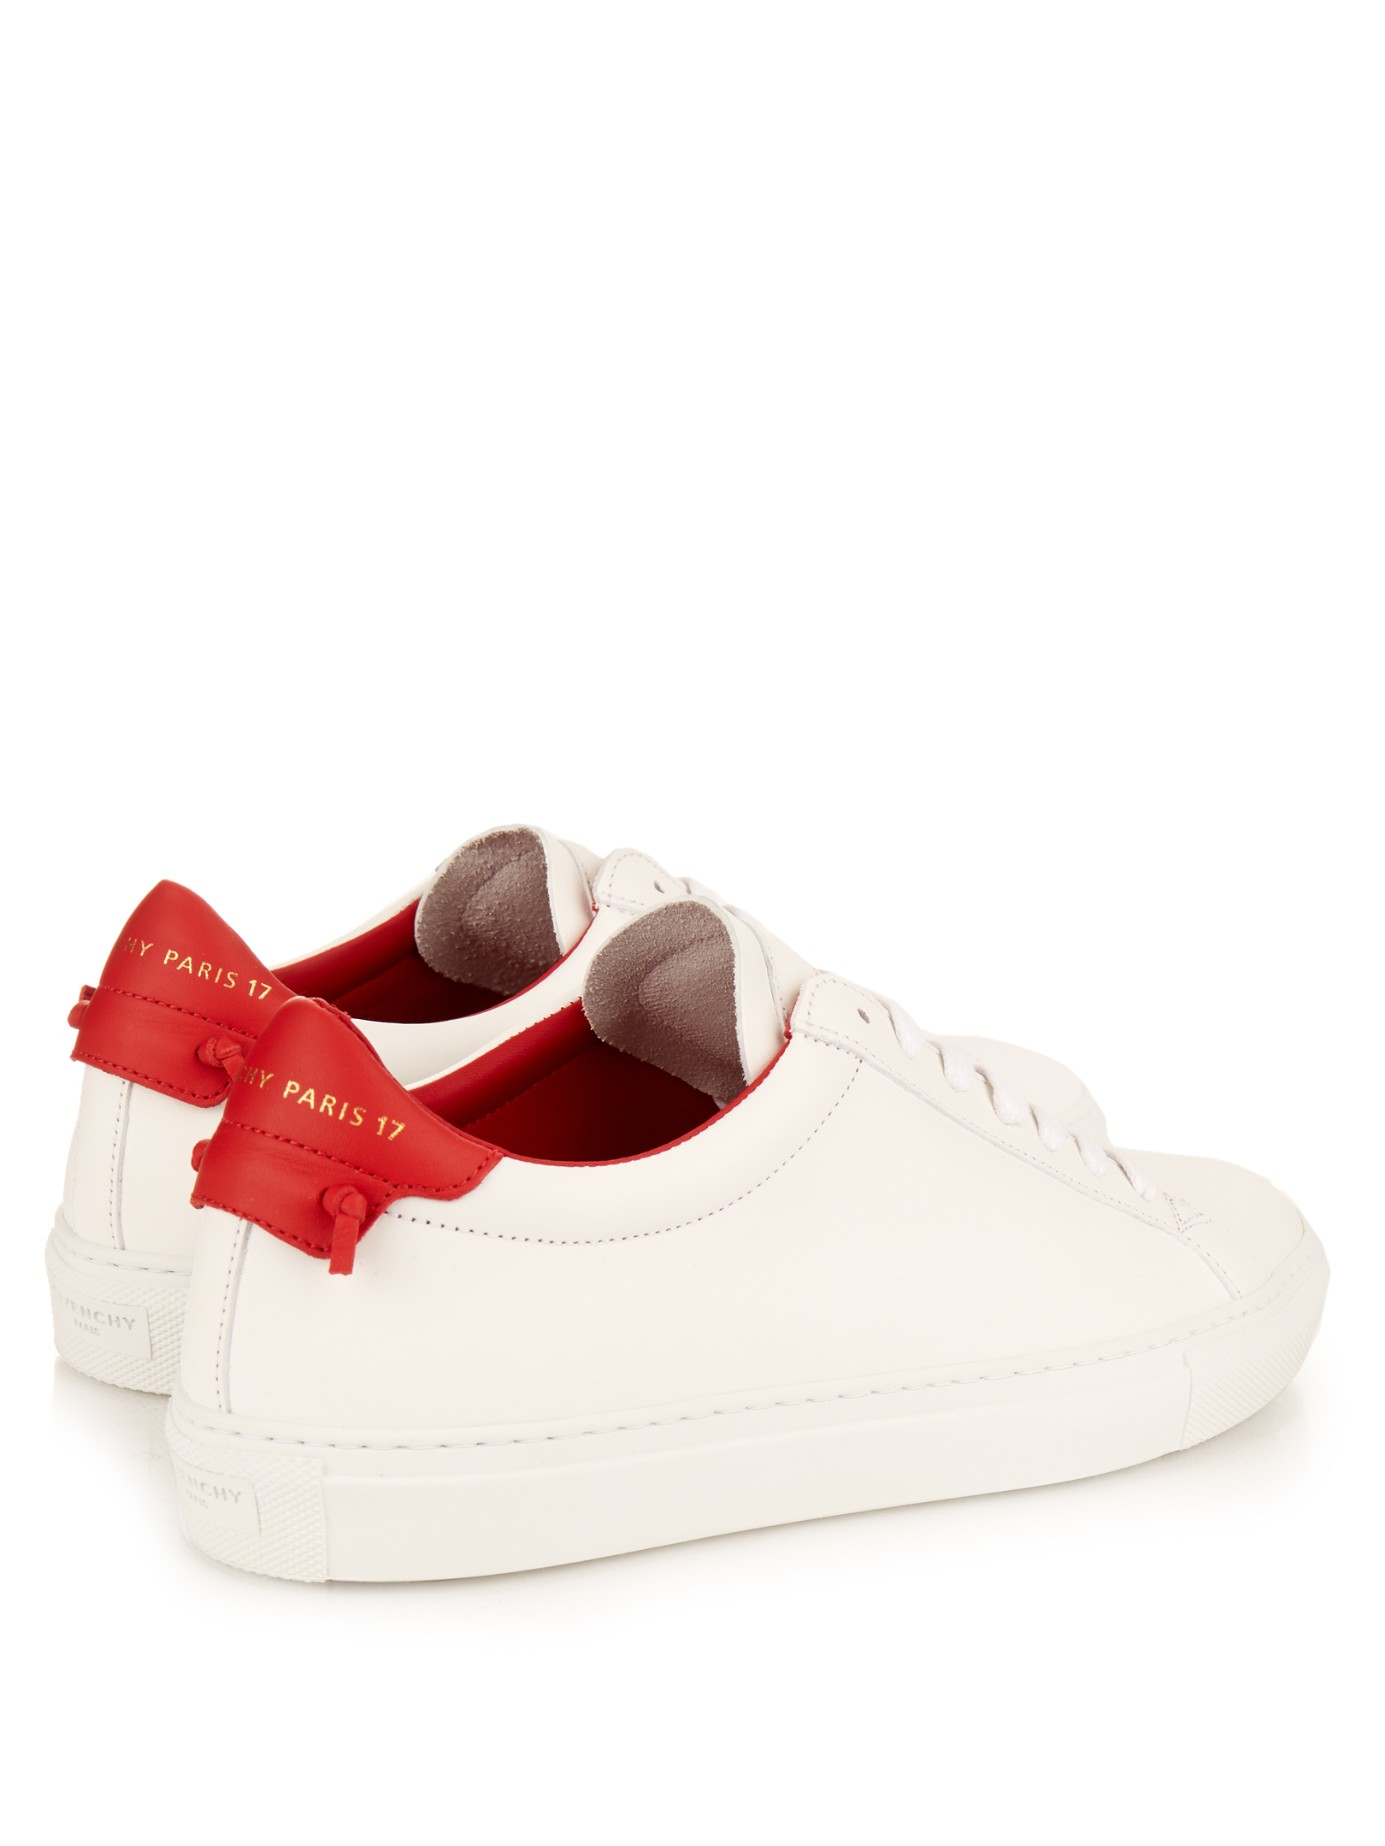 Urban knots leather sneakers Givenchy YLyDPsd